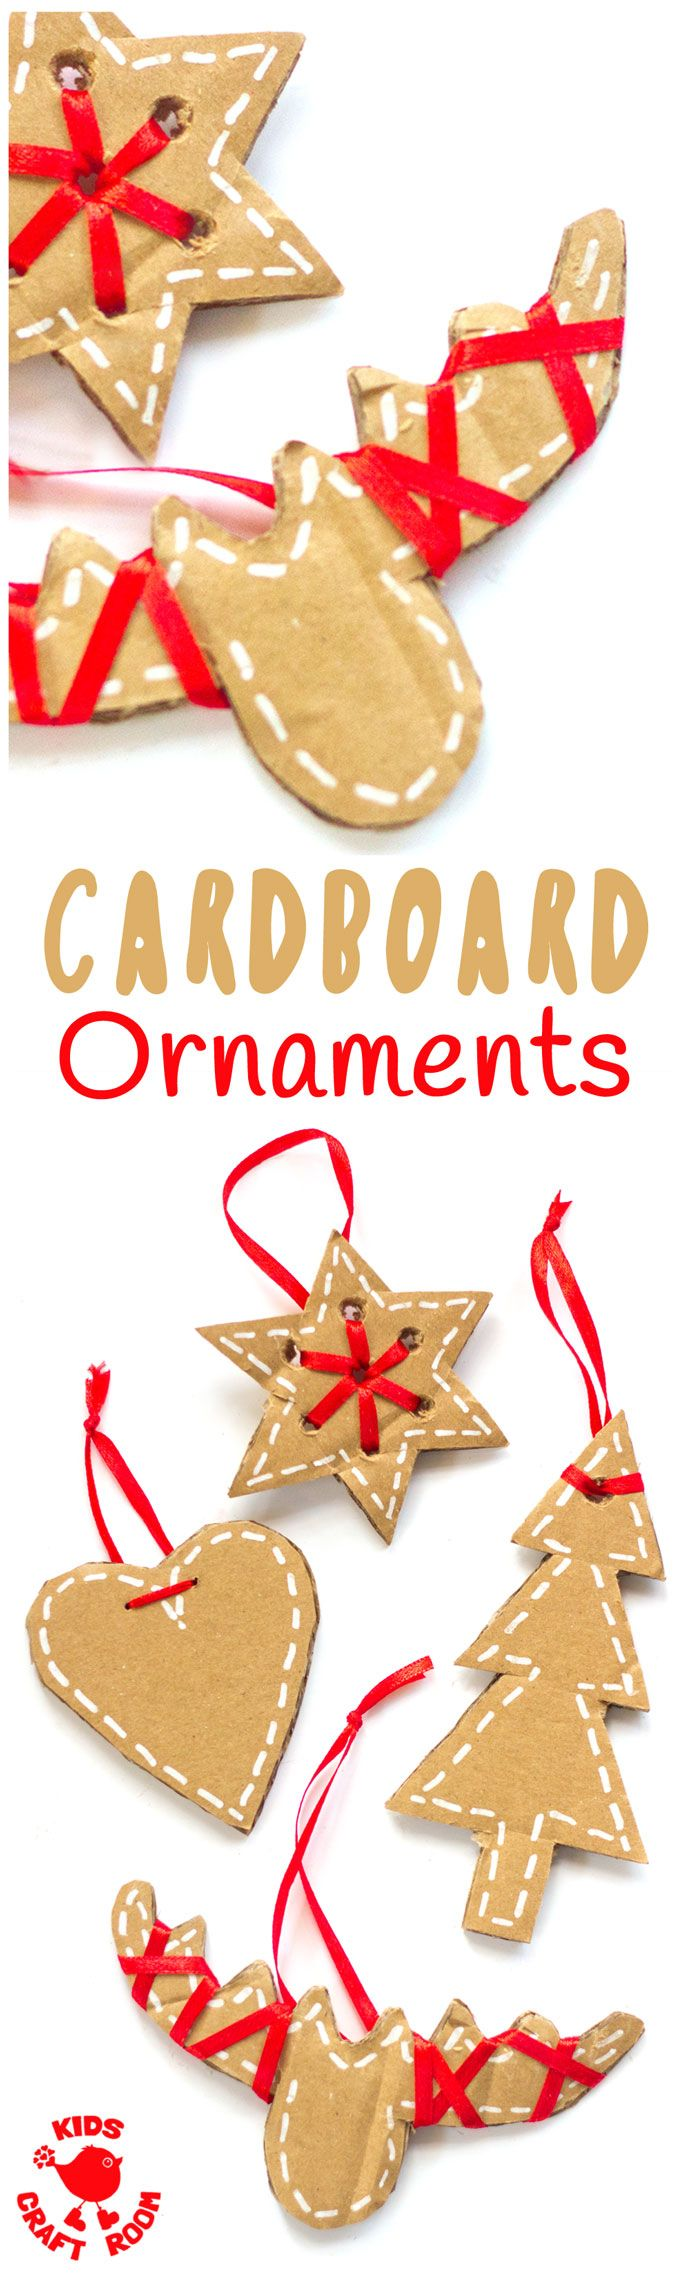 PRETTY CARDBOARD ORNAMENTS - These rustic DIY cardboard ornaments are a fantastic recycled crafts that will make your Christmas tree and home gorgeous this Winter. A simple Christmas craft for kids and adults. #christmas #christmascrafts #kidscrafts #recy